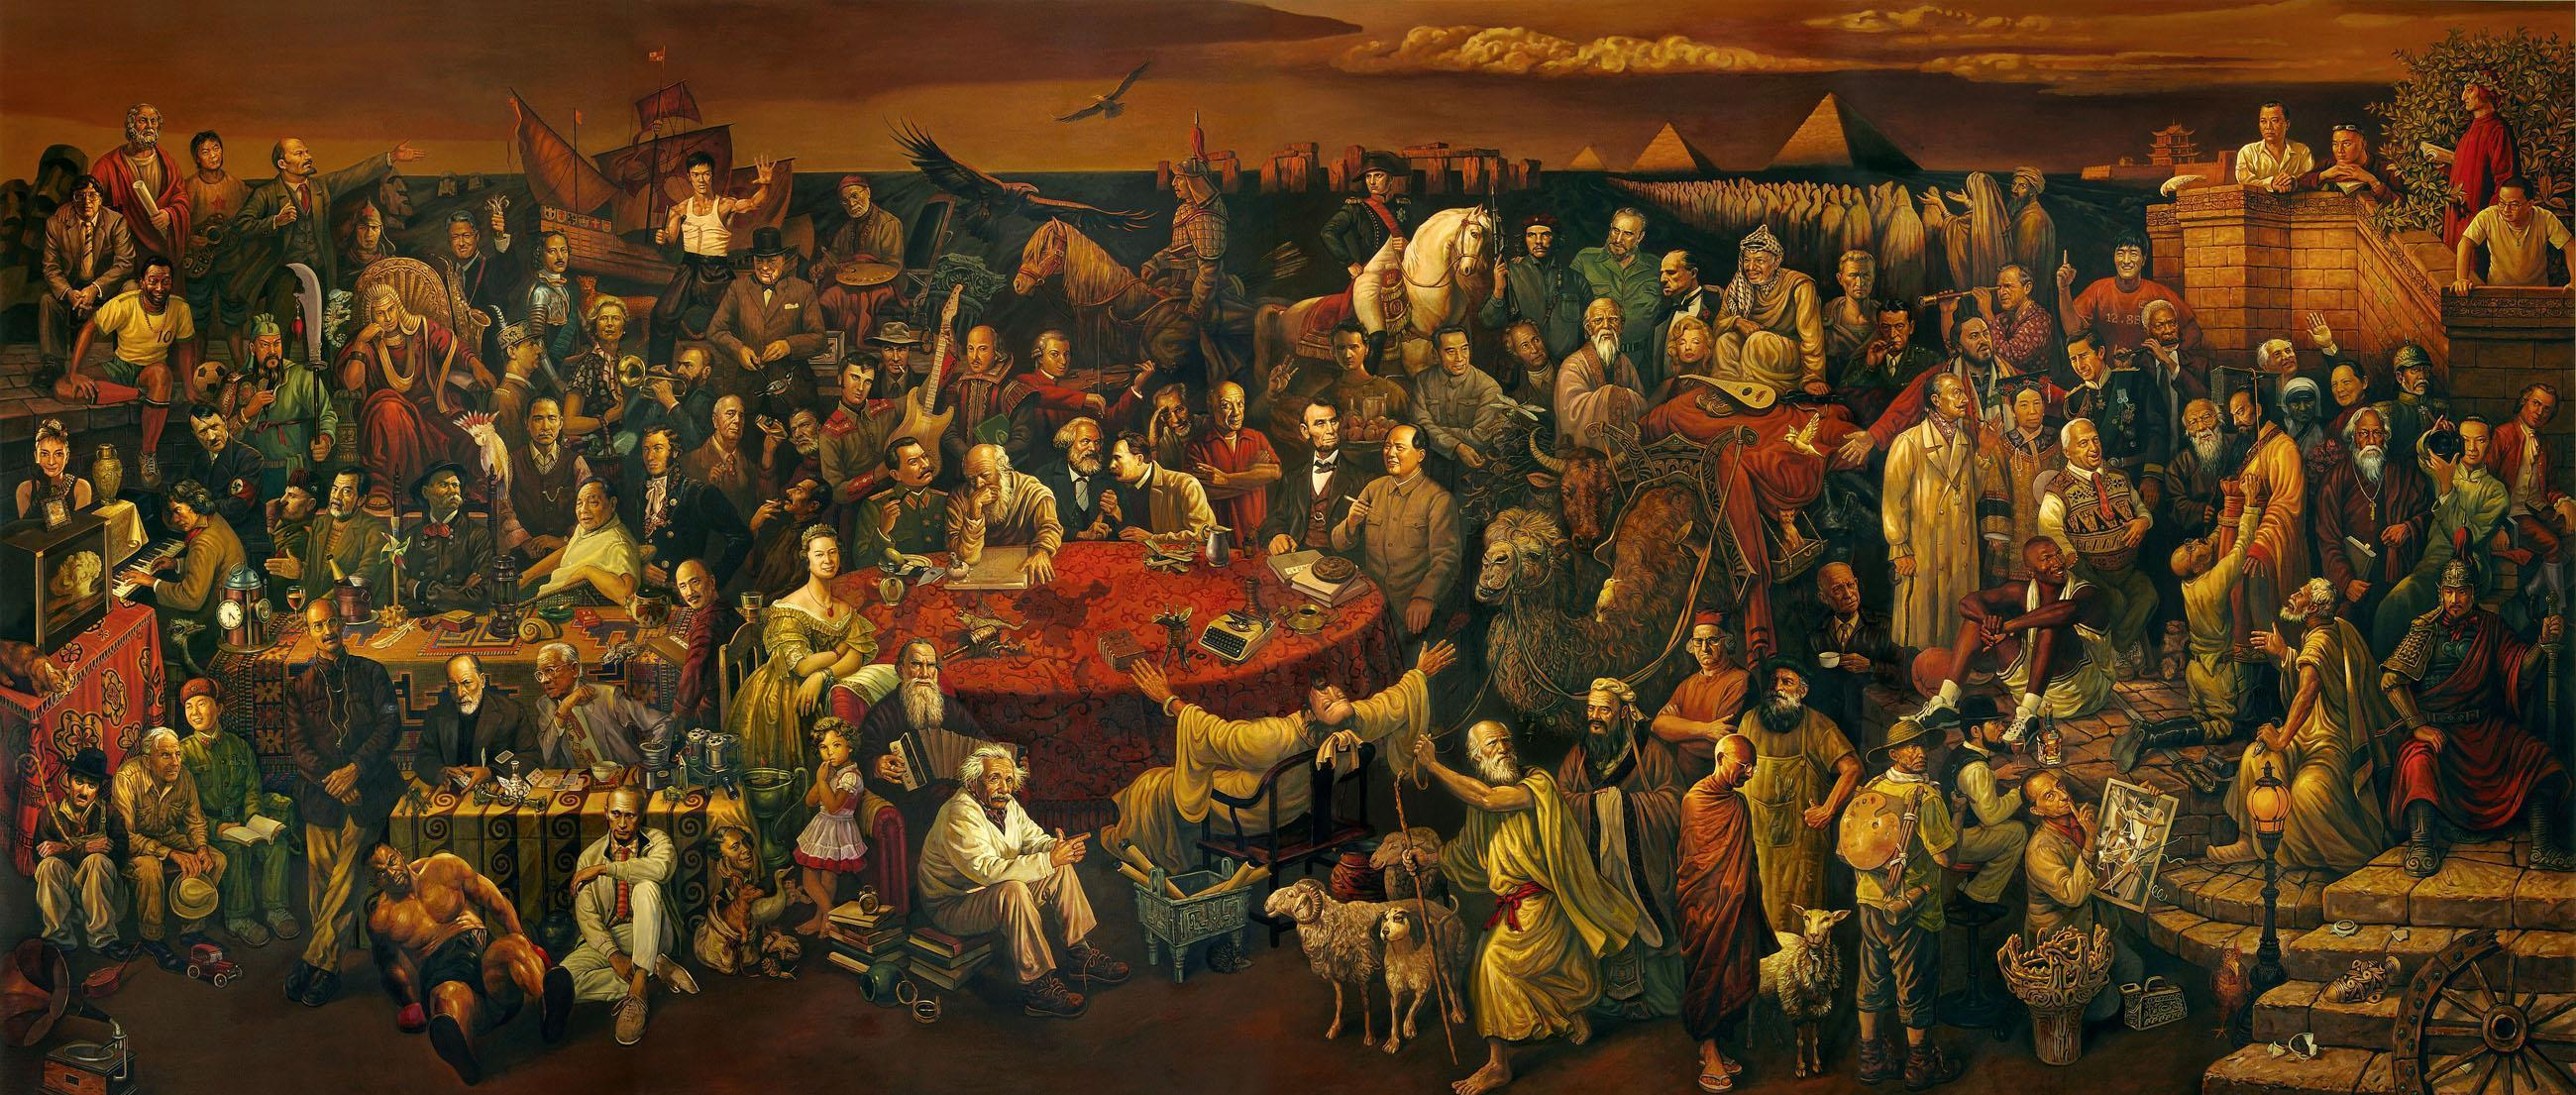 Chinese Artists Dai Dudu, Li Tiezi, and Zhang An, 2006, oil on canvas